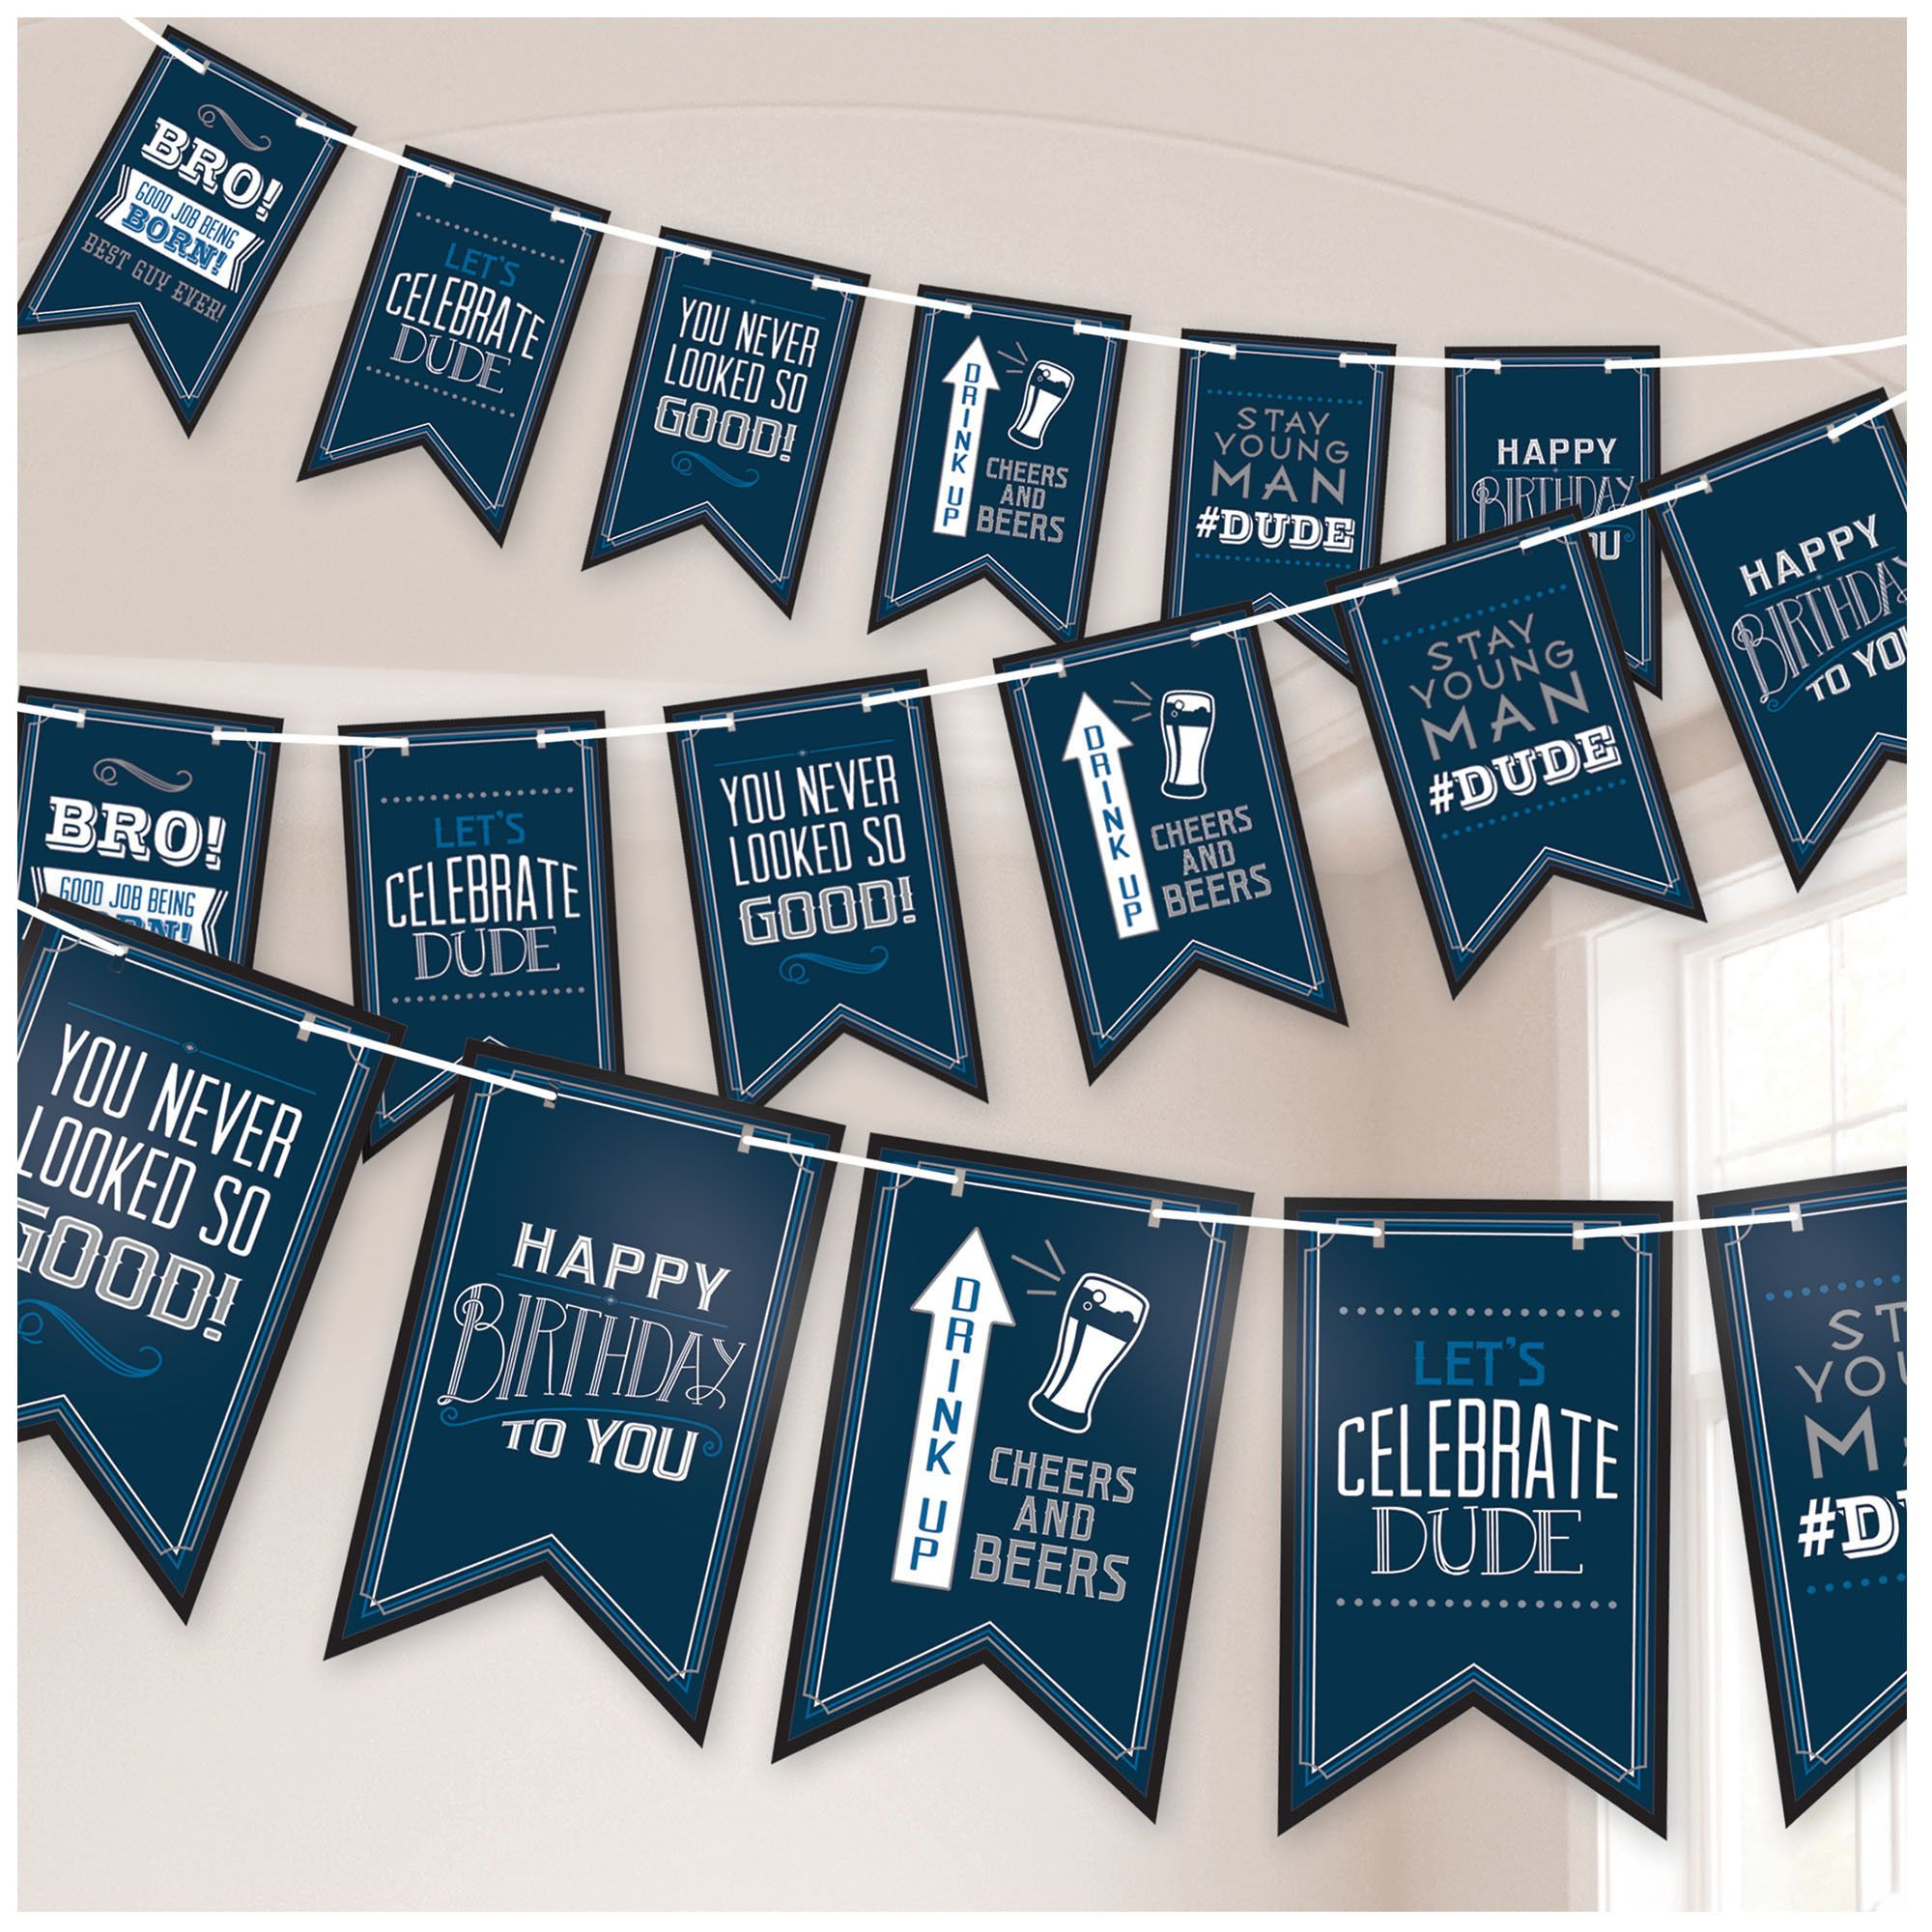 Happy Manly Bday Penant Banner